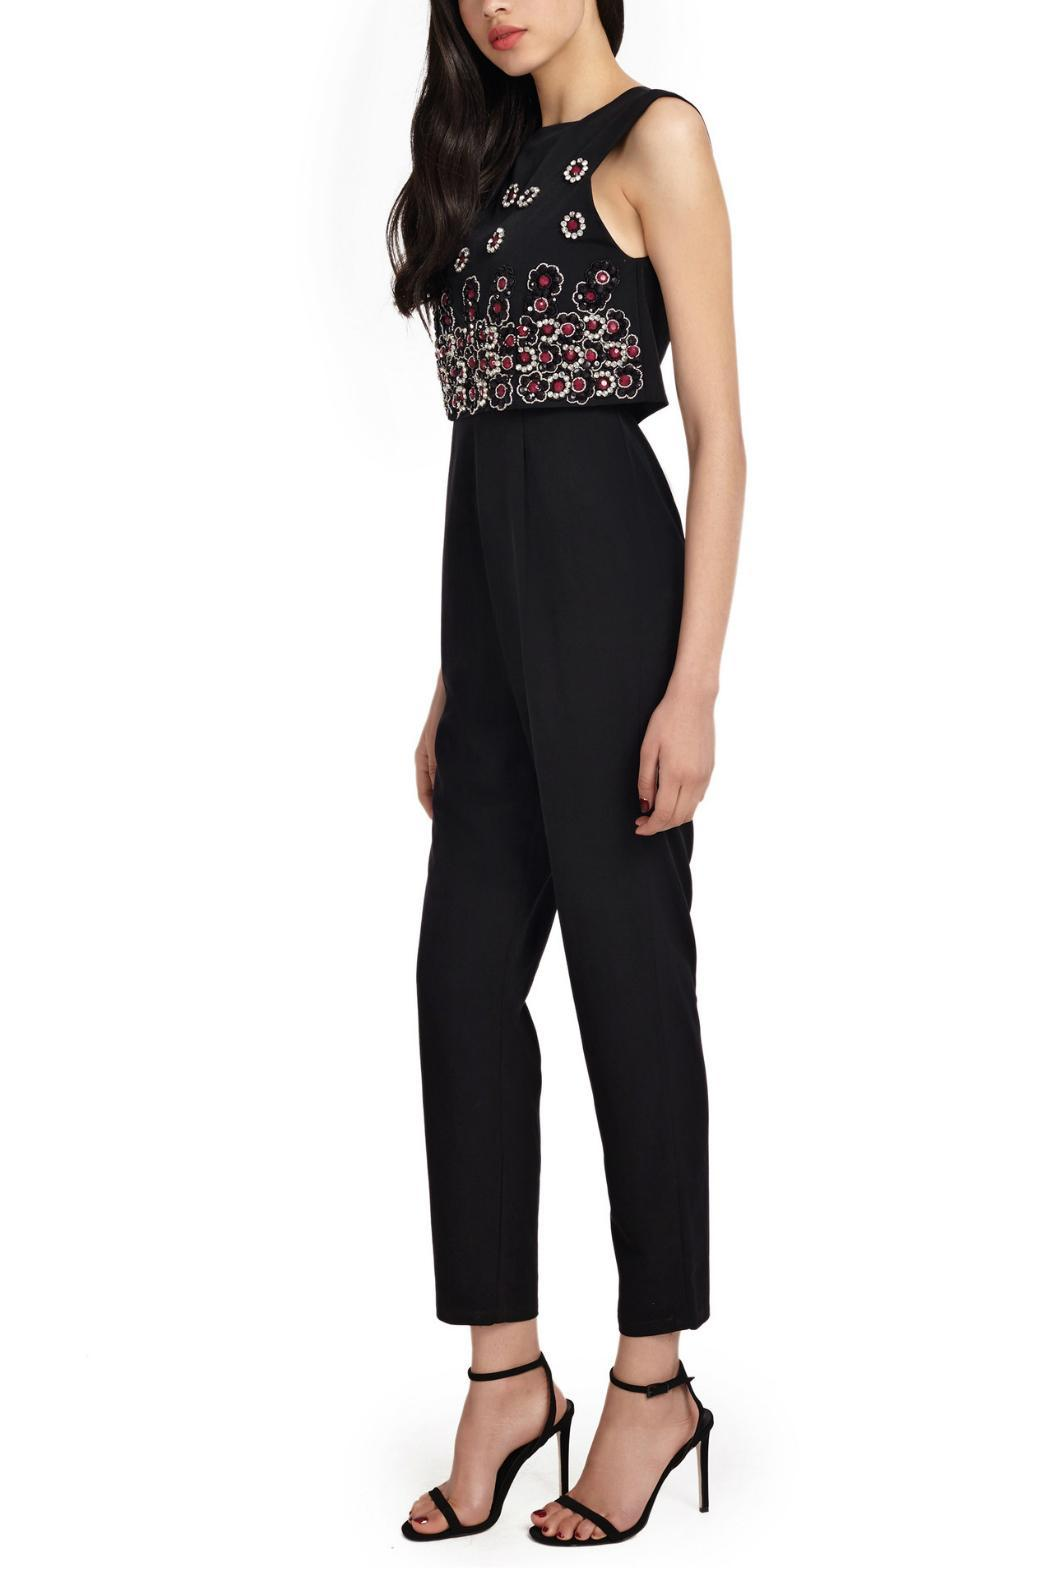 Wolf & Whistle Beaded Overlay Jumpsuit - Back Cropped Image